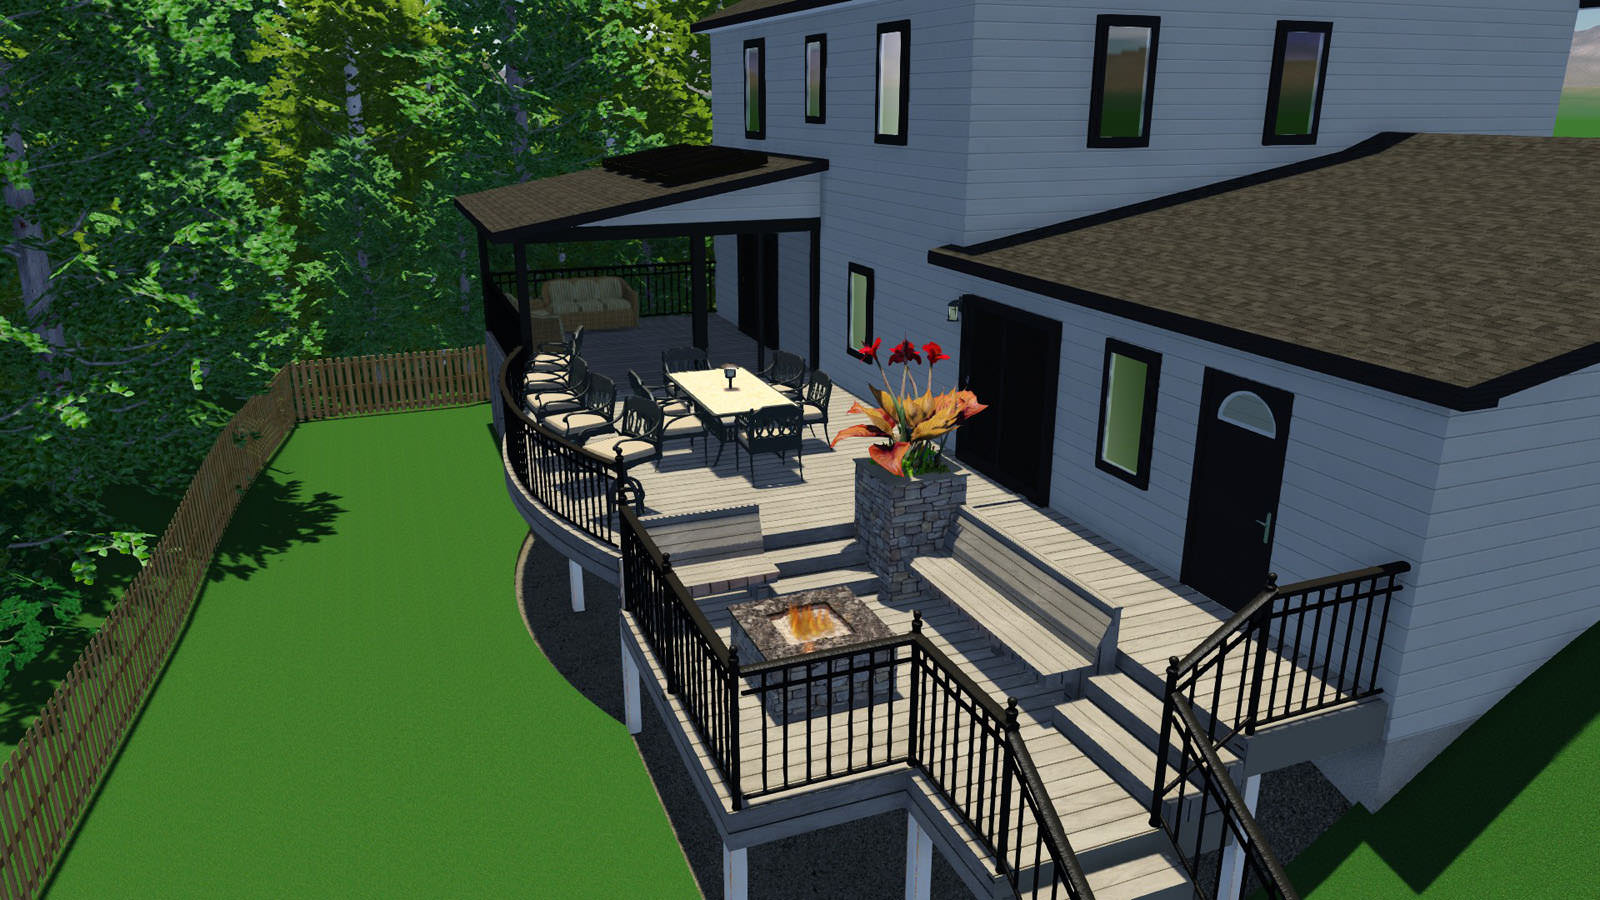 Quick Residence « MasterPLAN Outdoor Living on Masterplan Outdoor Living id=17765